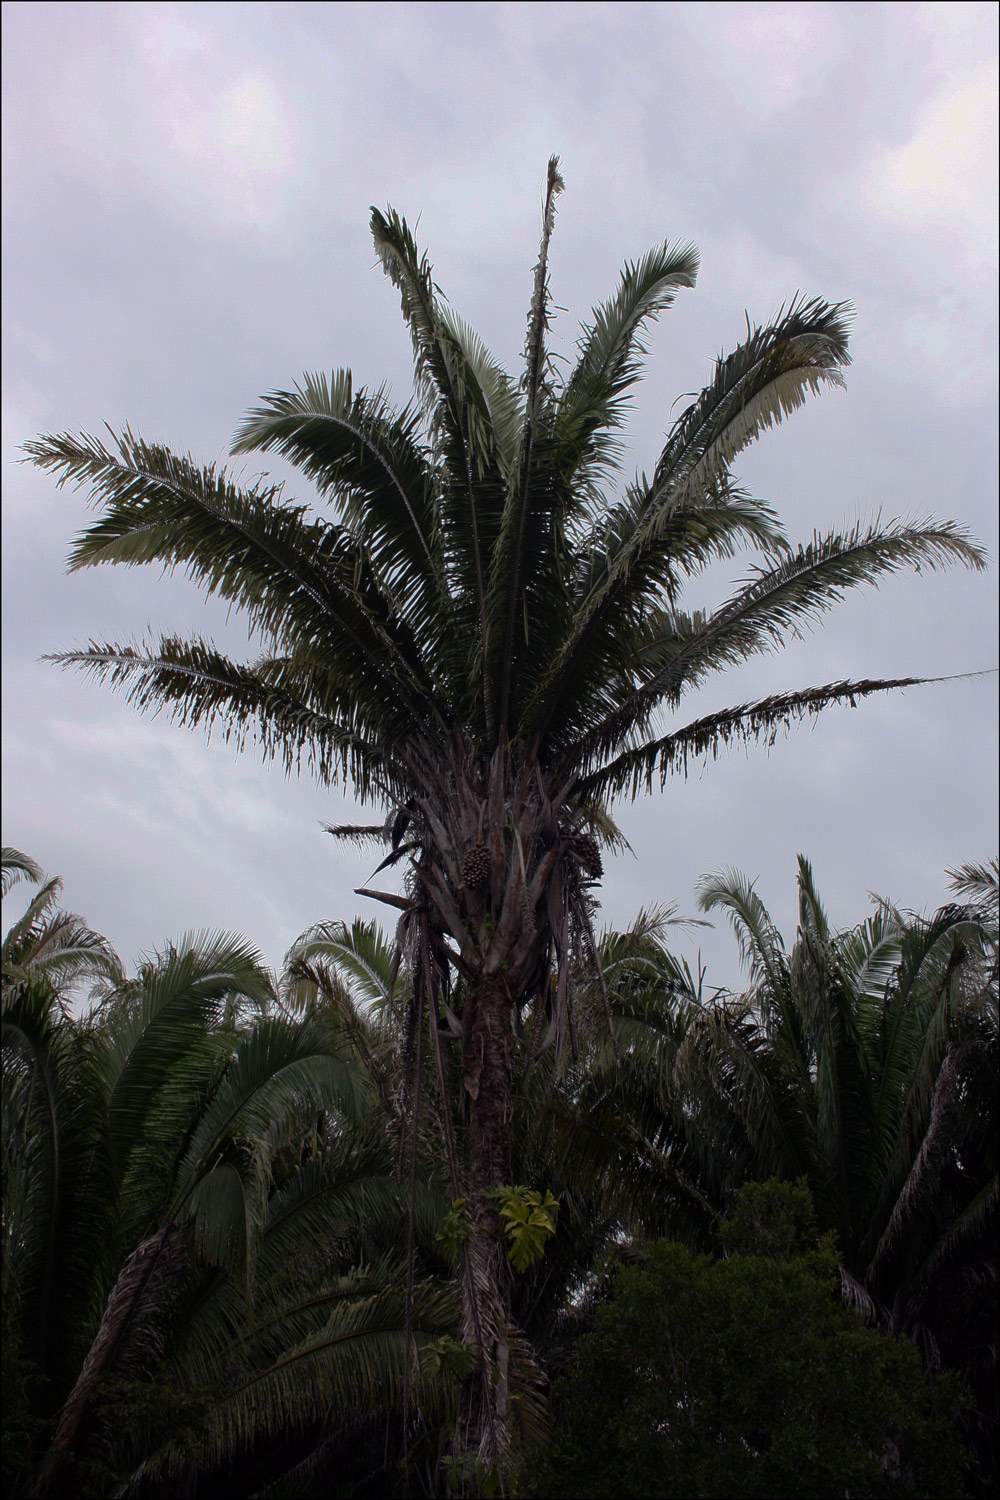 Cohune Palm (Orbignya cobune)